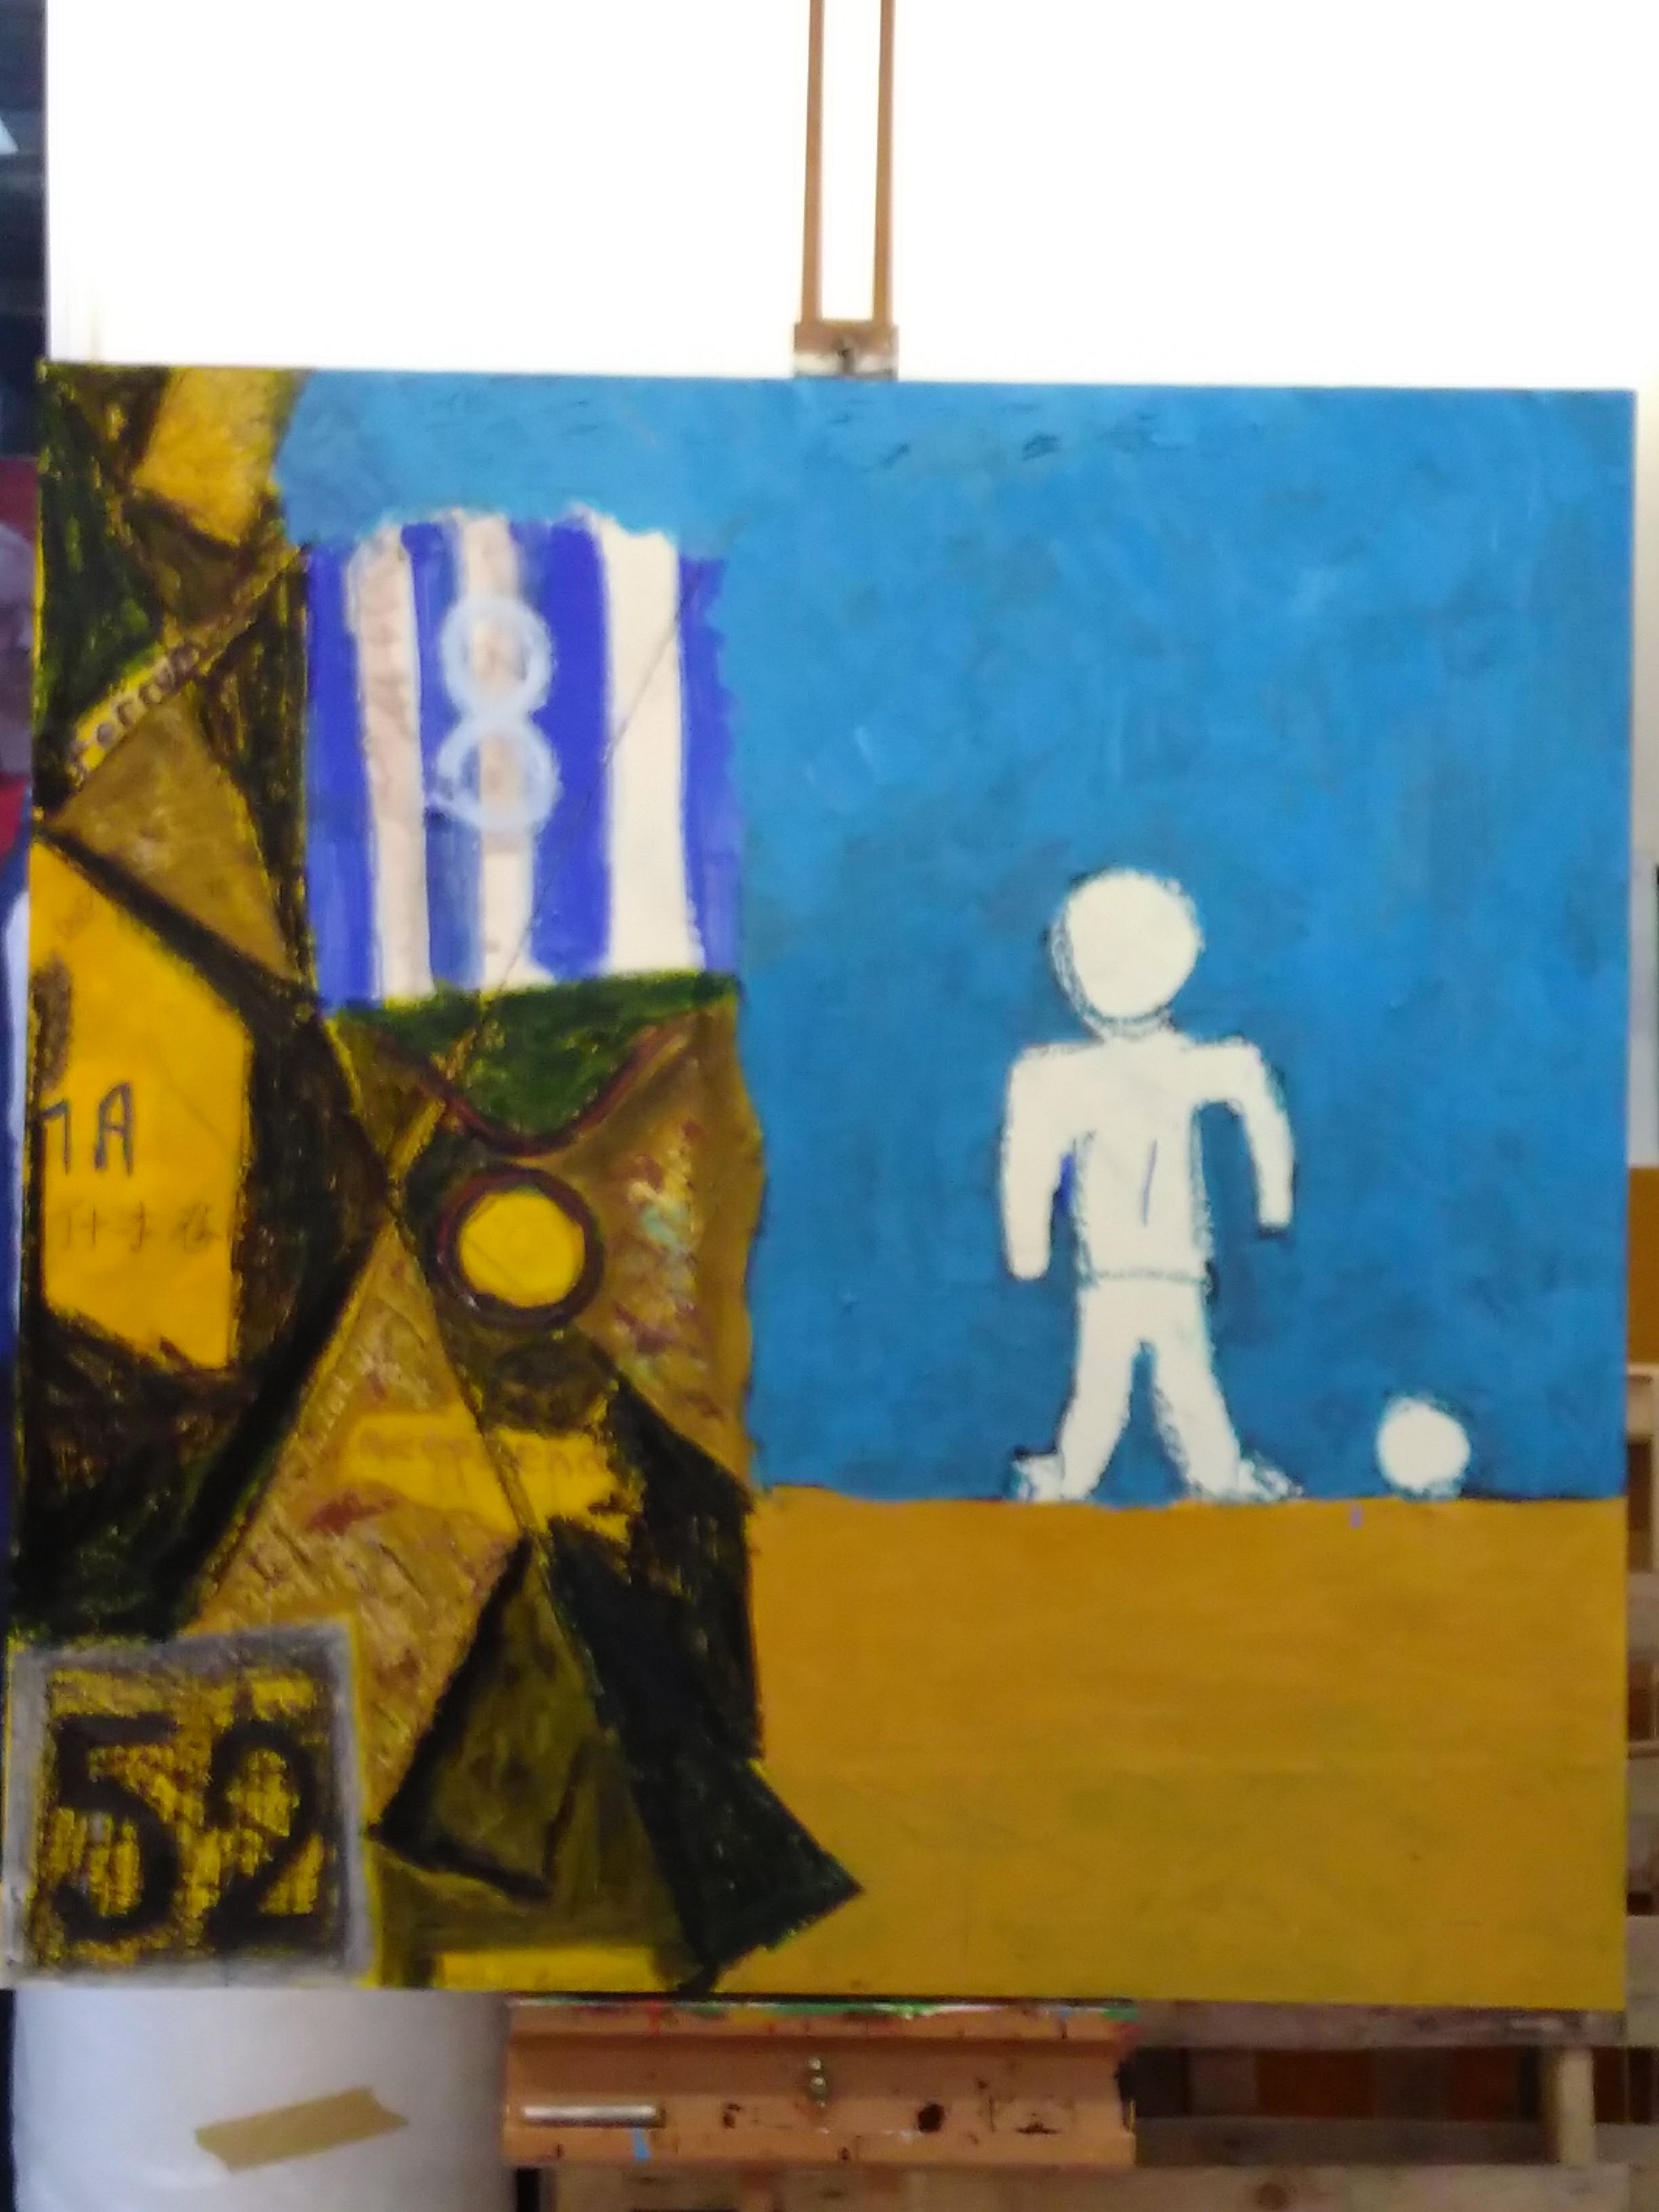 A painting which shows on the right, a white figure against a blue background, and on the left, a collage of scraps.